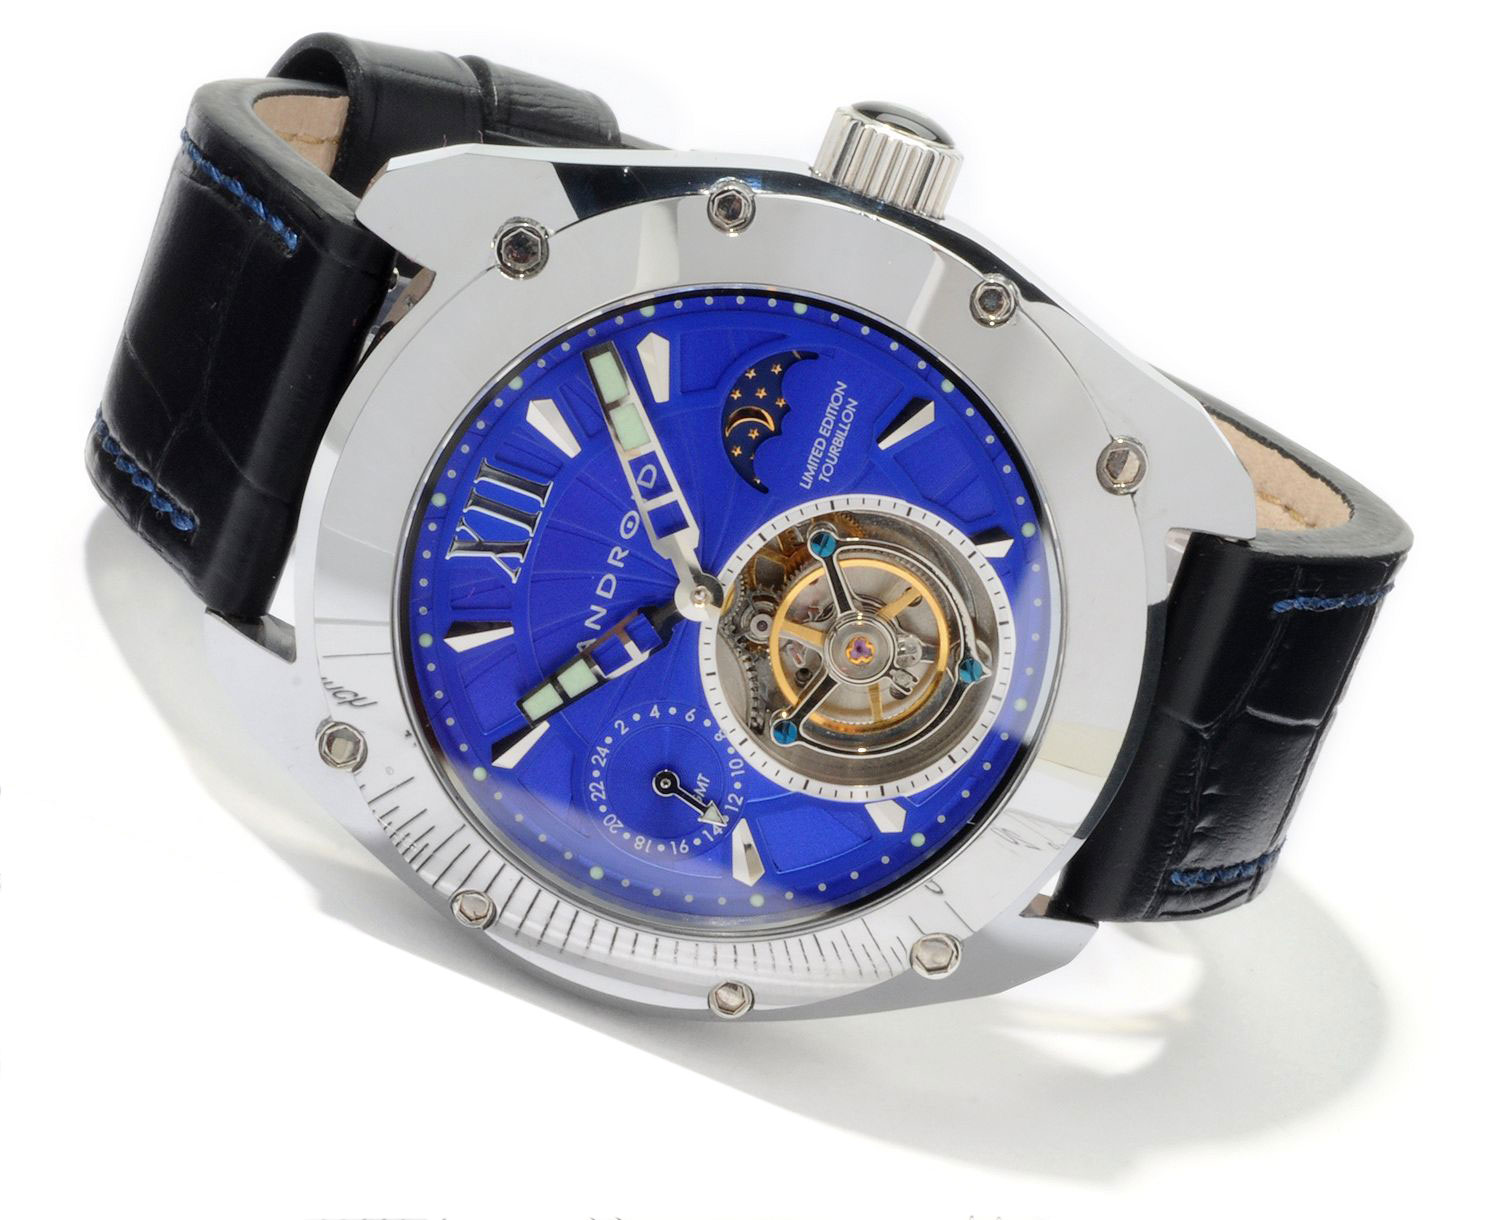 Limited Edition Android Virtuoso Tungsten Tourbillon Watch